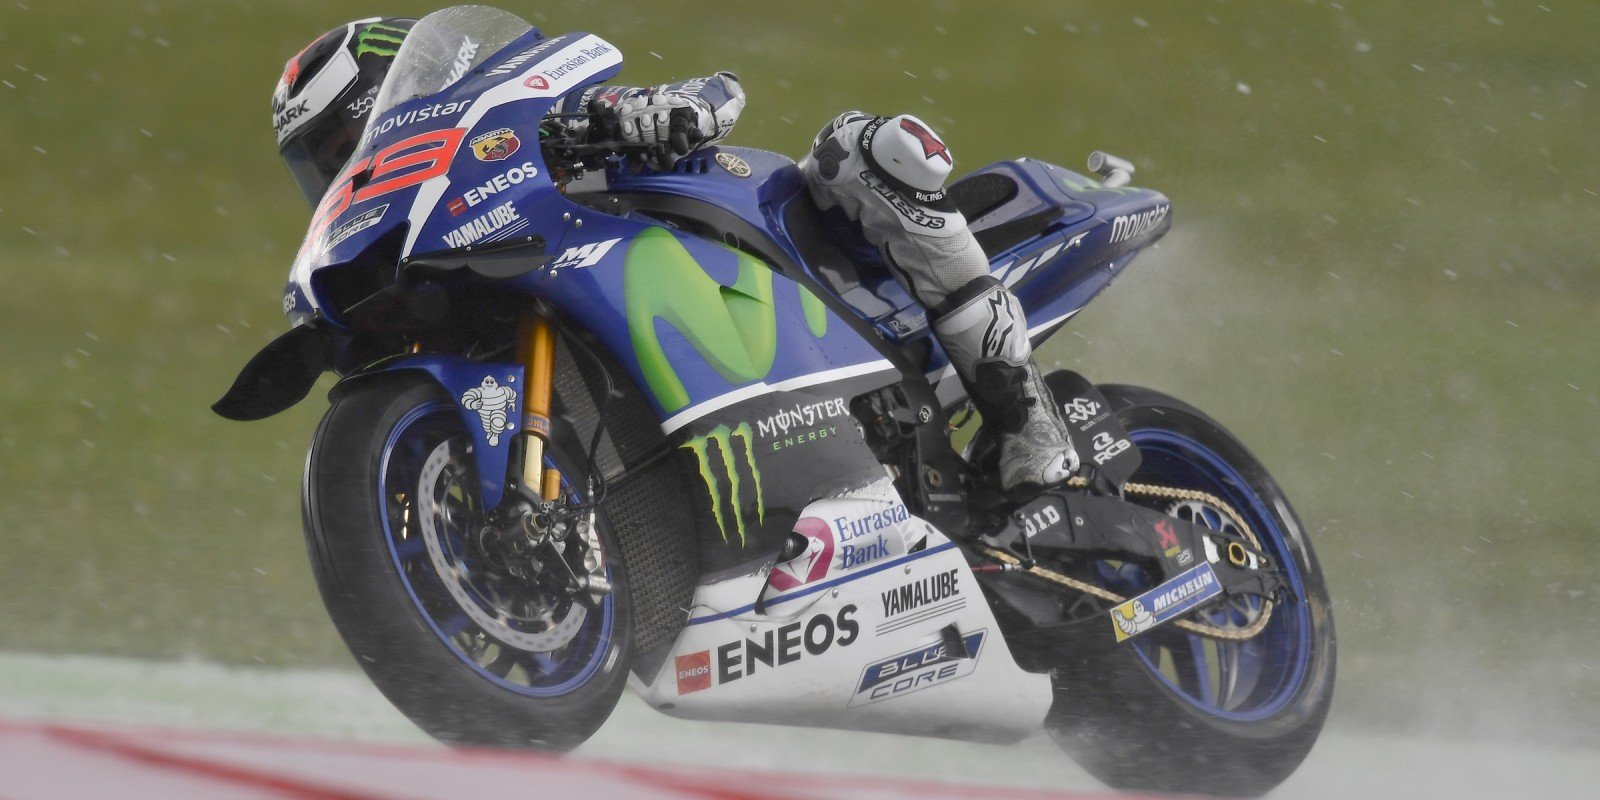 Monster athletes compete in the 2016 MotoGP season in Assen